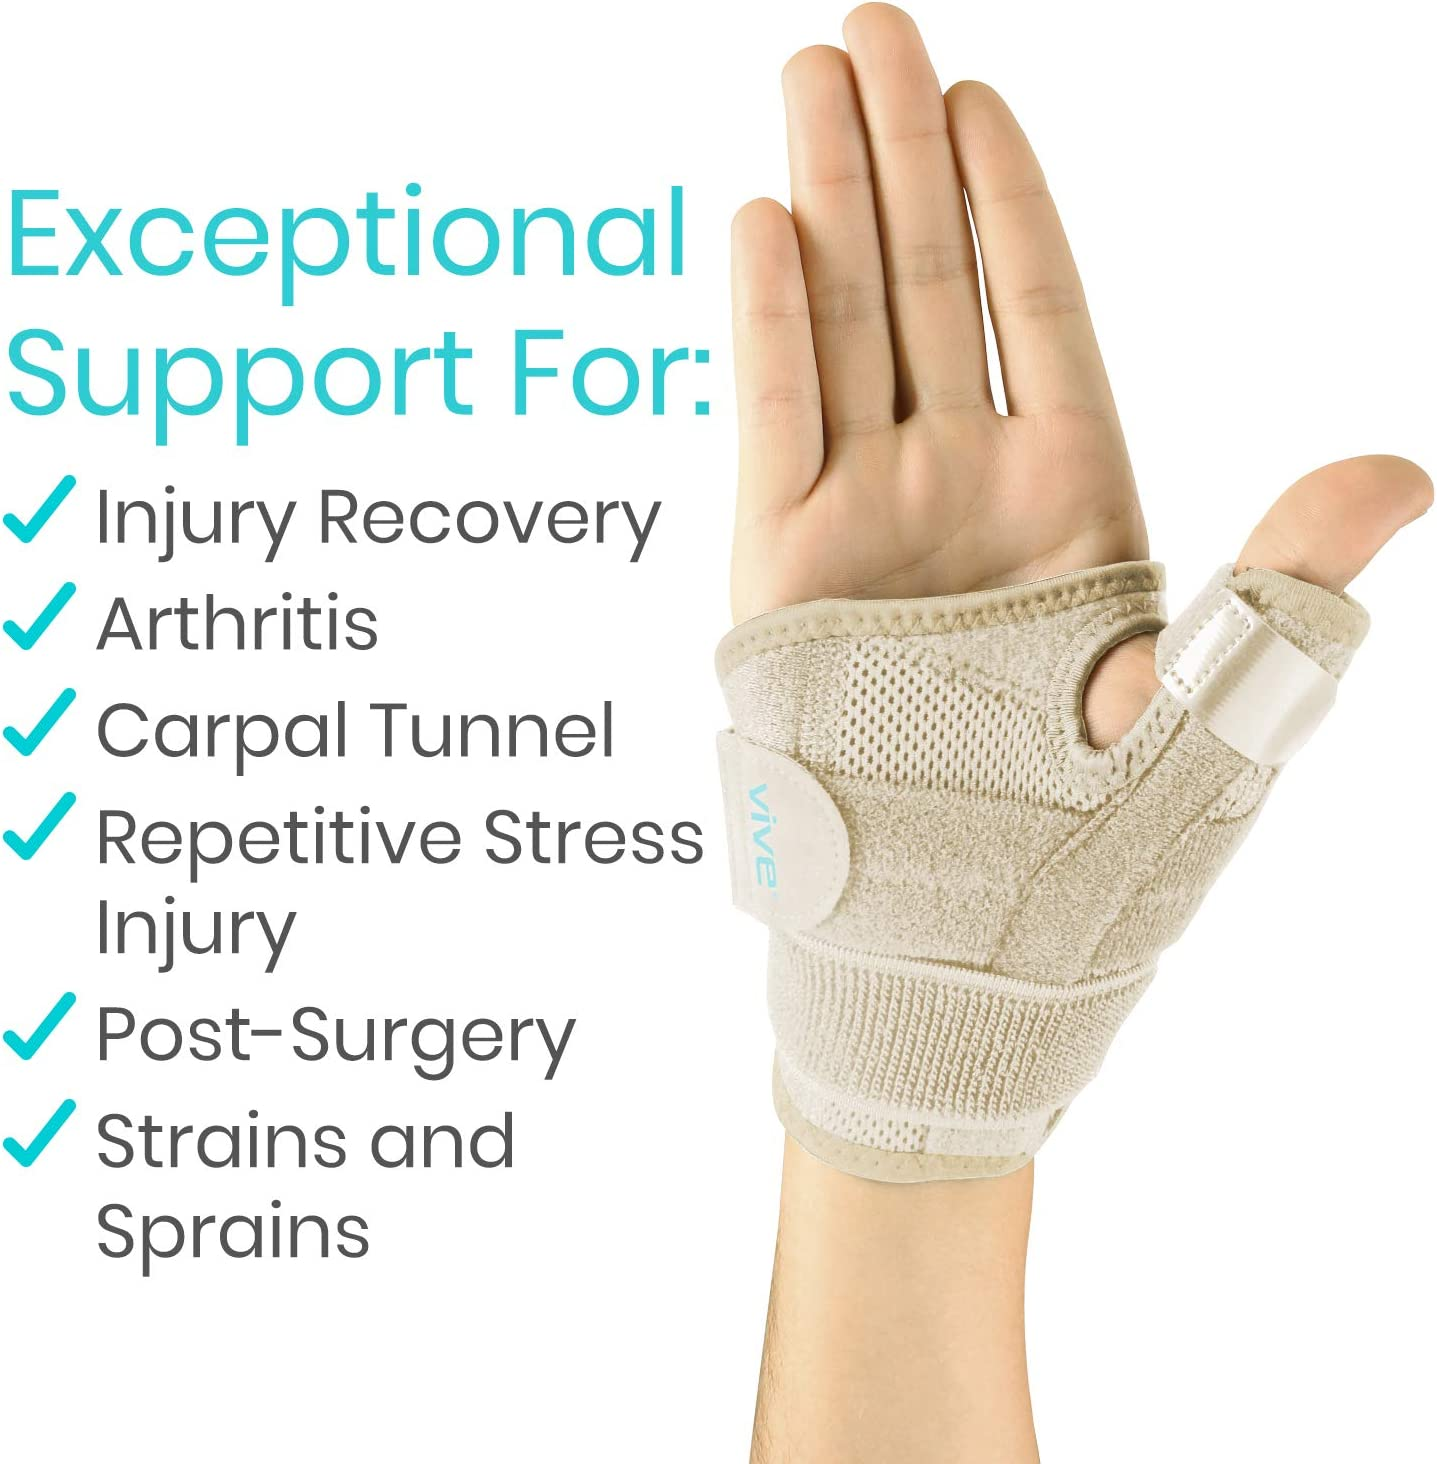 Vive Arthritis Thumb Splint - Thumb Spica Support Brace for Pain, Sprains, Strains, Arthritis, Carpal Tunnel & Trigger Thumb Immobilizer - Wrist Strap - Left or Right Hand (Beige): Health & Personal Care